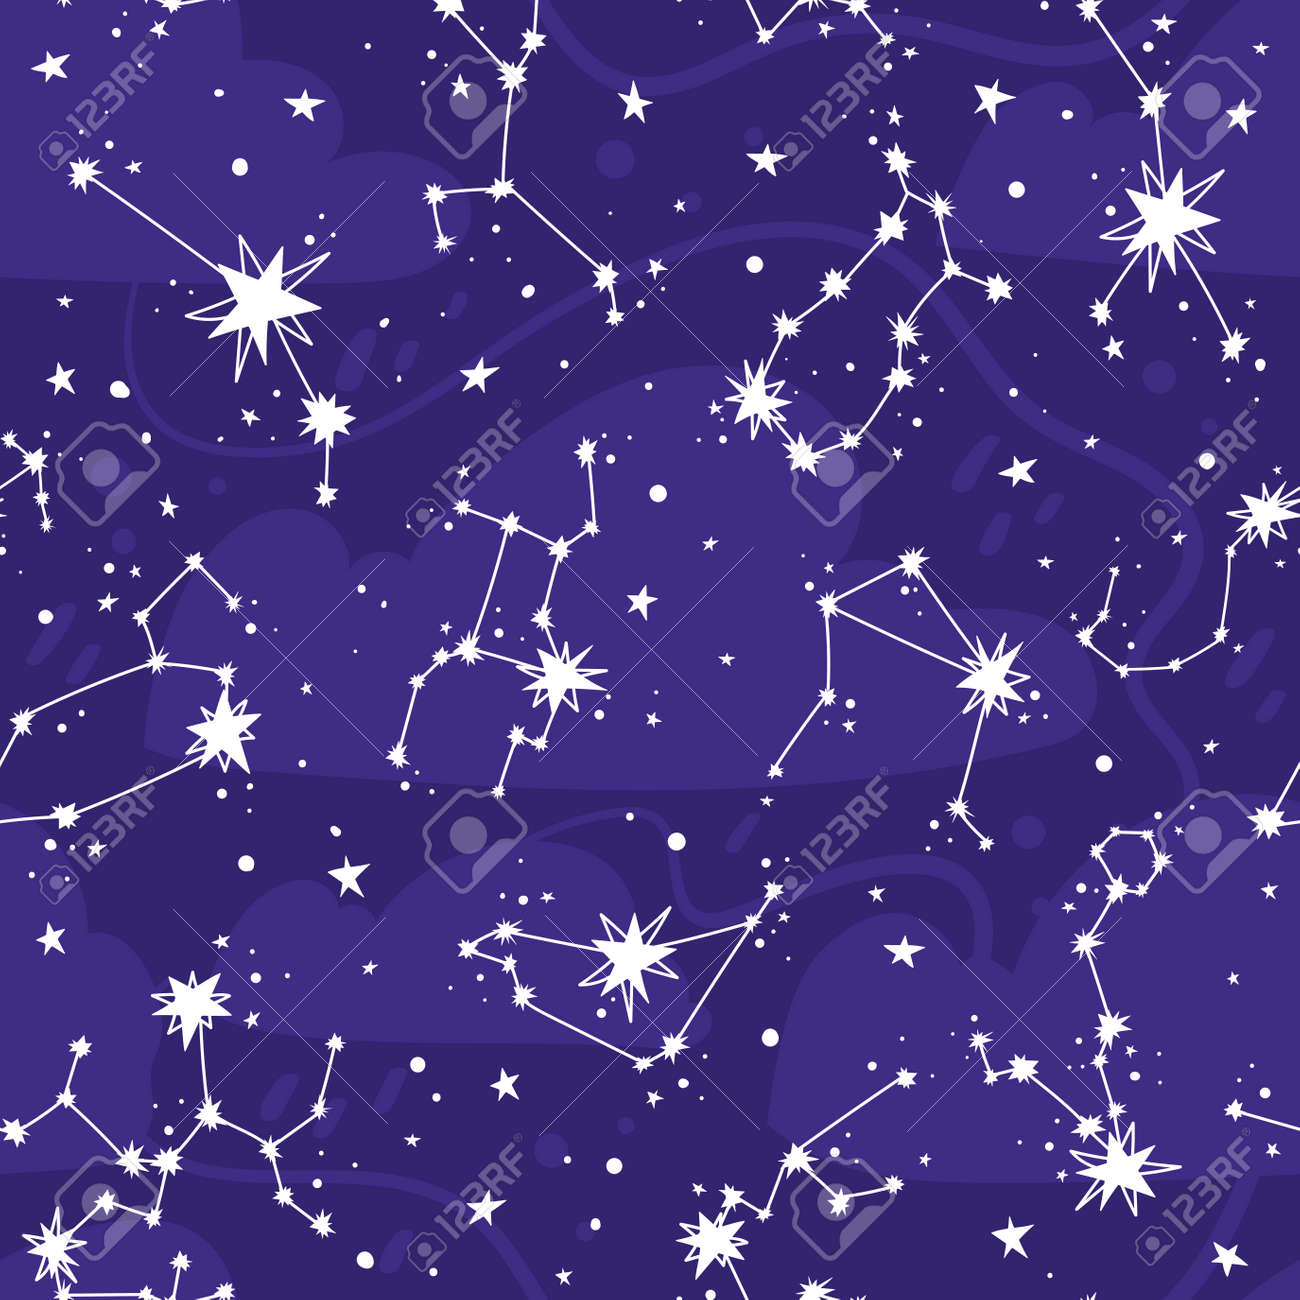 Constellations and stars vector seamless pattern. Astronomical background with zodiac signs - 170358989